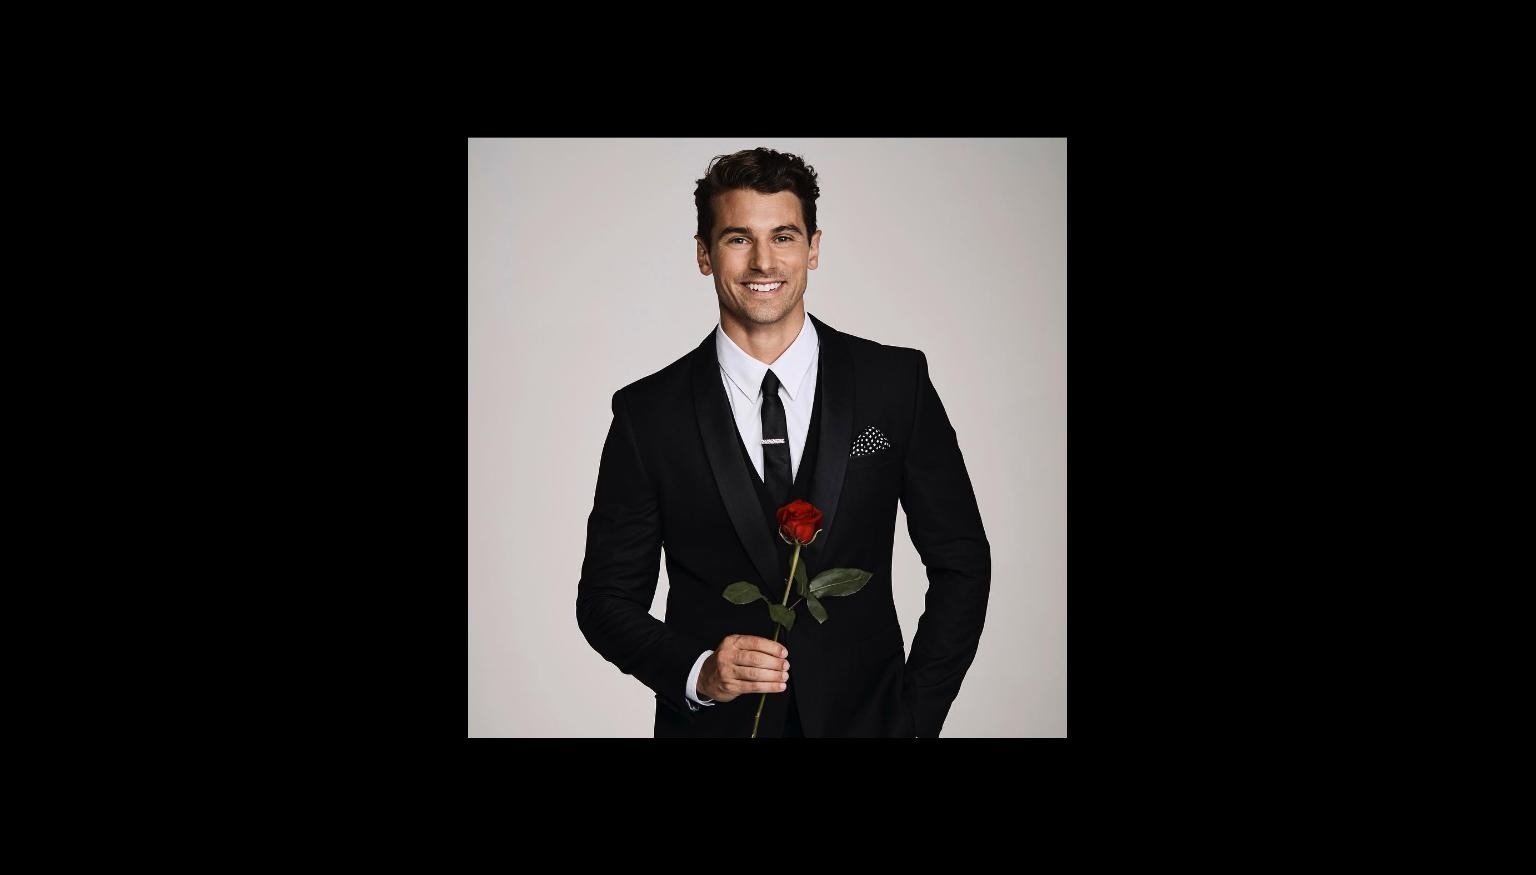 Fashion week The australia bachelor announced for girls